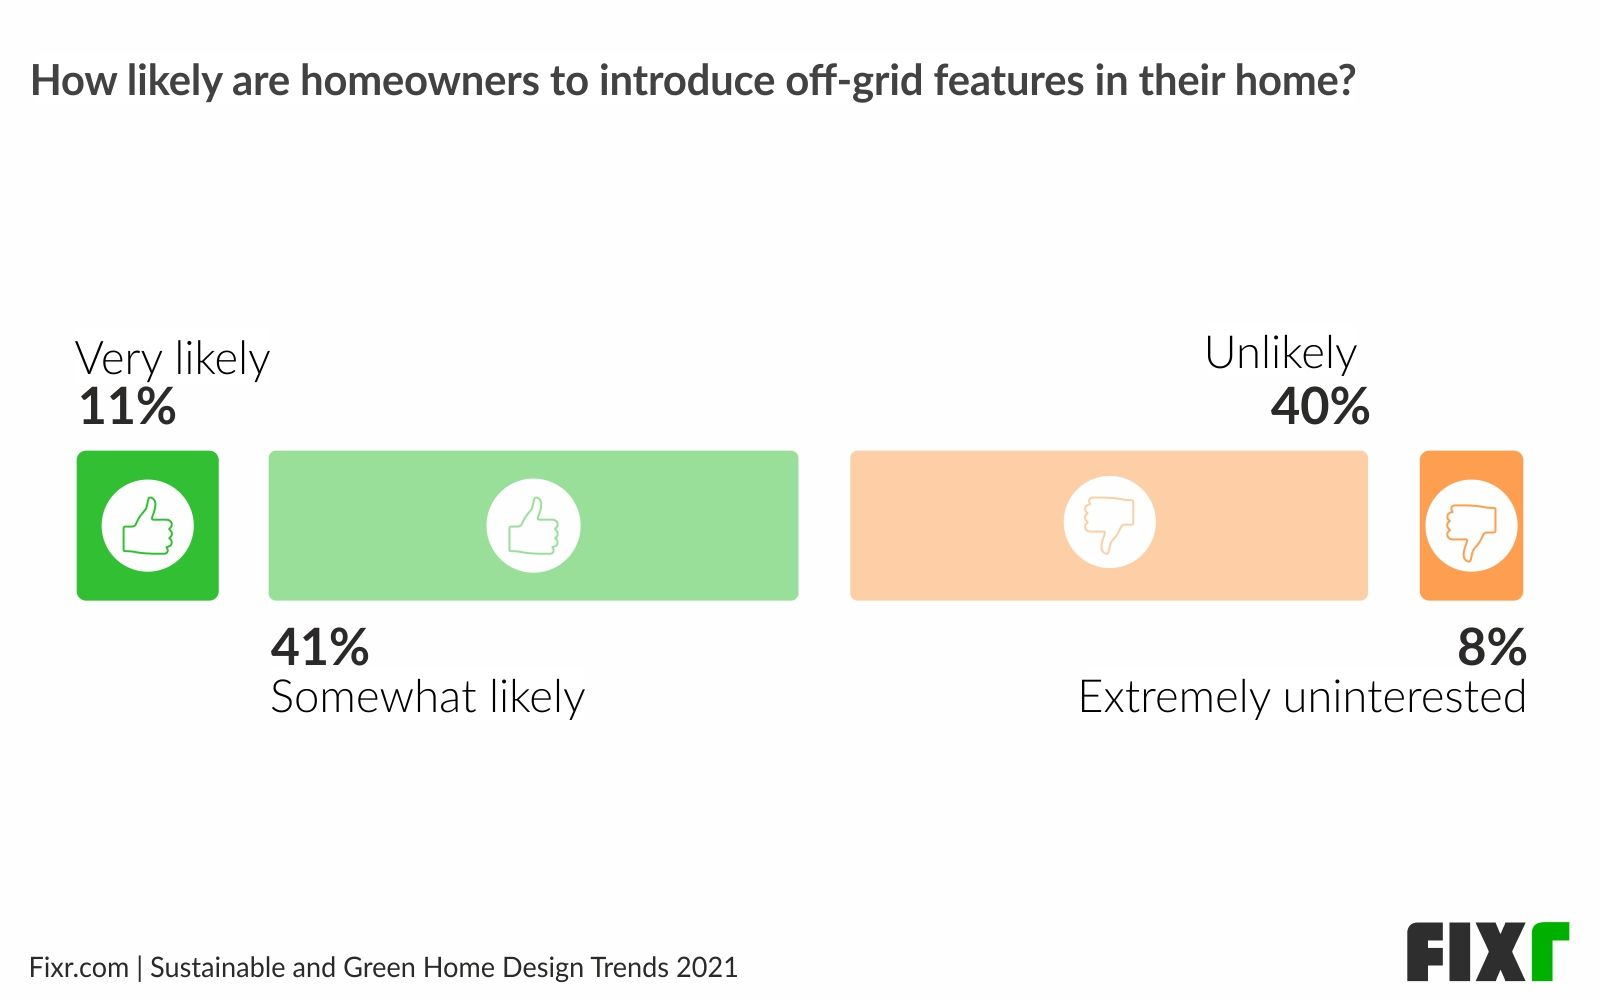 Preferences Differ for Off-Grid Features in Homes in 2021